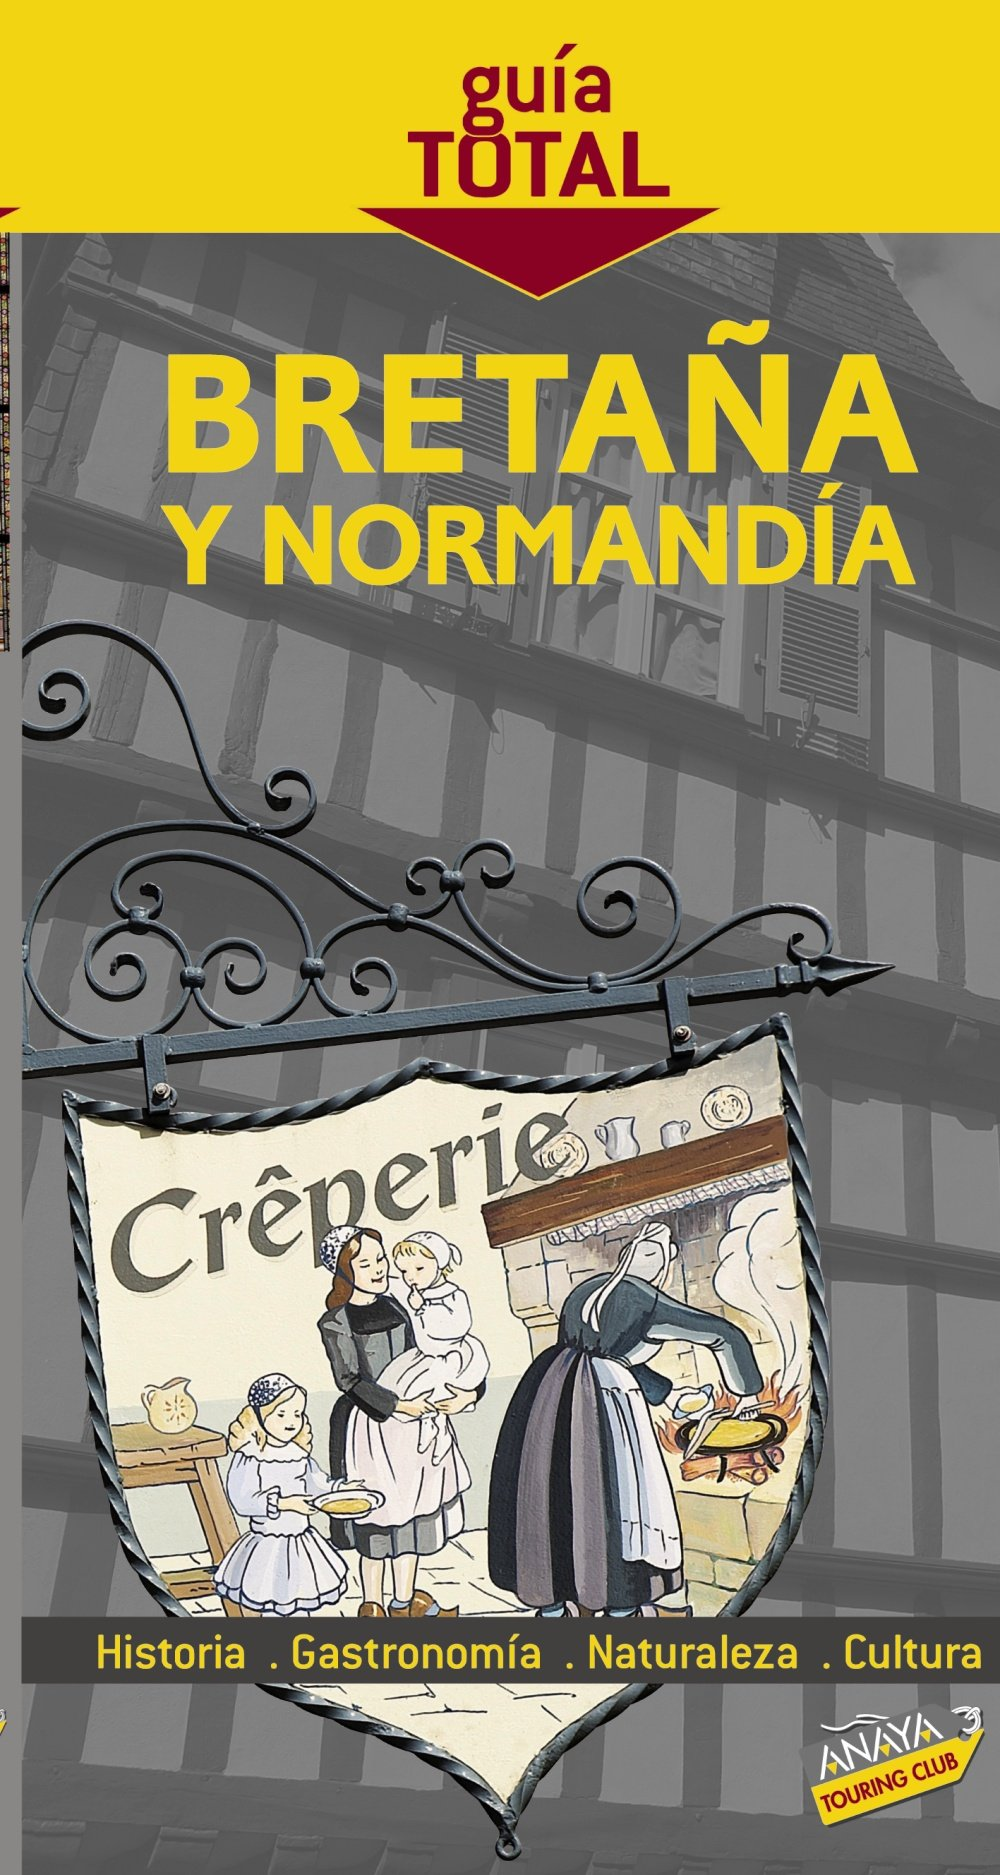 Download Normandia y Bretana/ Normandy and Britain (Guia Total/ Complete Guide) (Spanish Edition) ebook